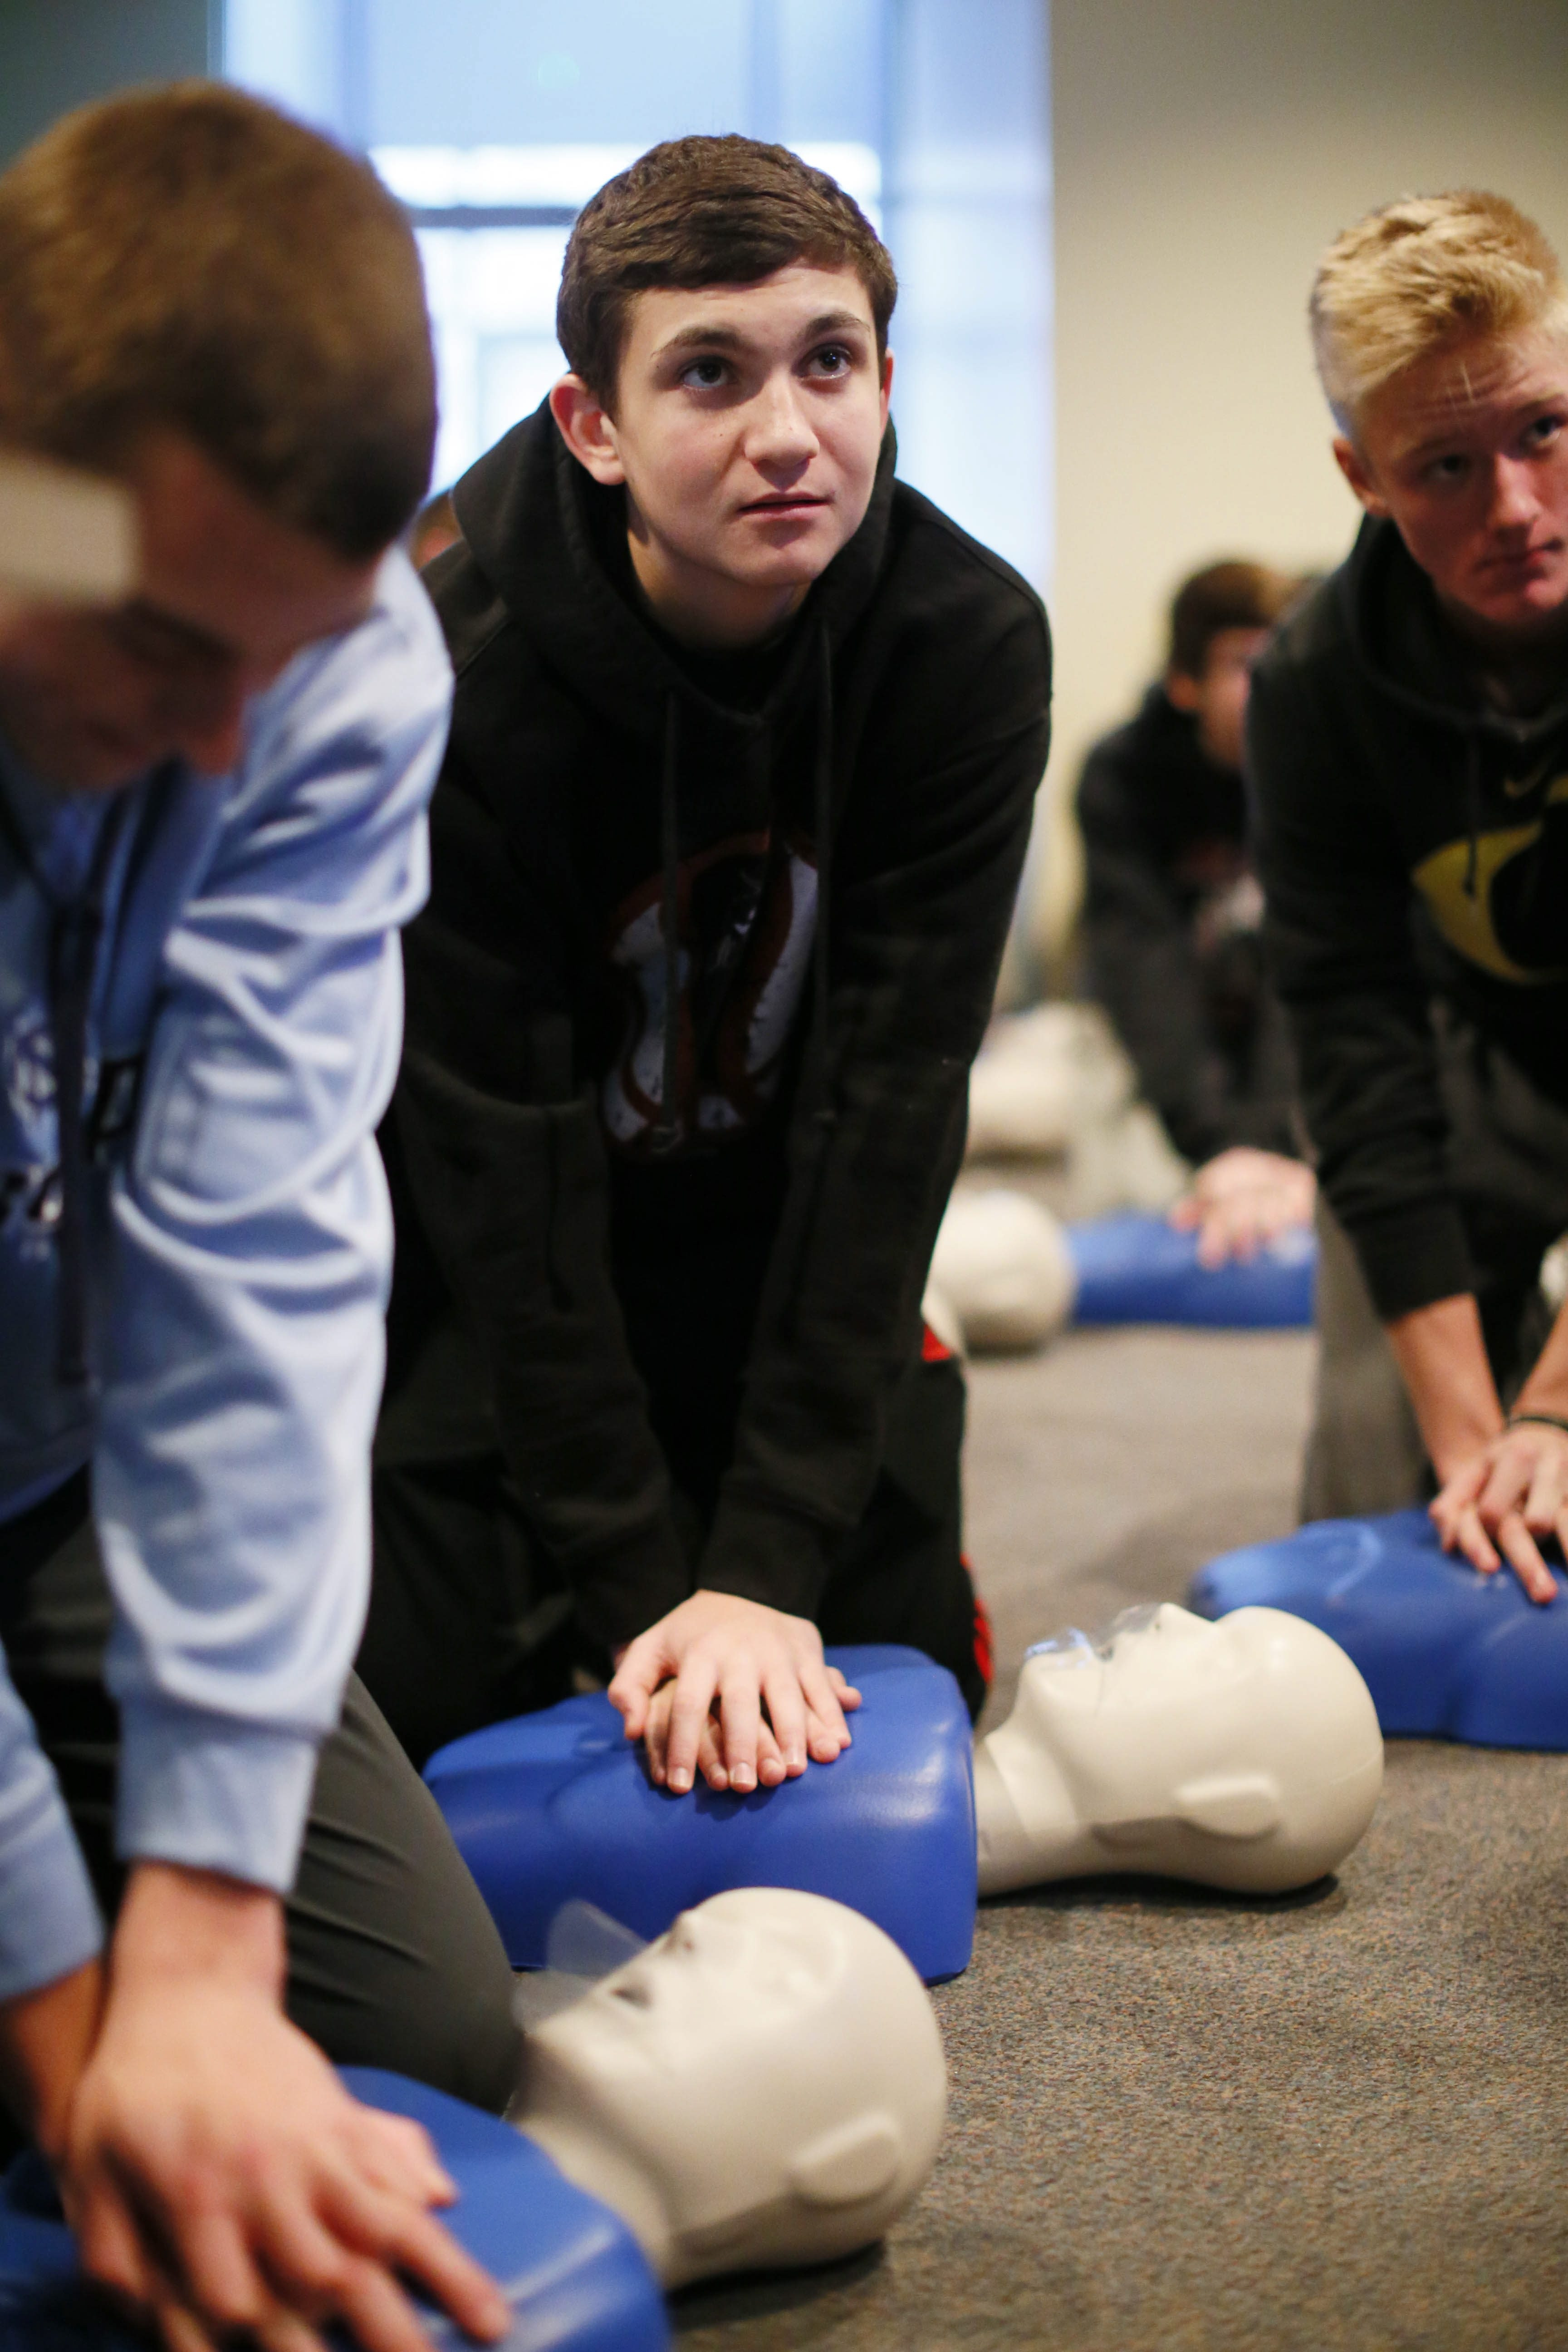 JJ Pesany, 15, center, practices CPR during a class Friday at Twin District Vol. Fire Company.